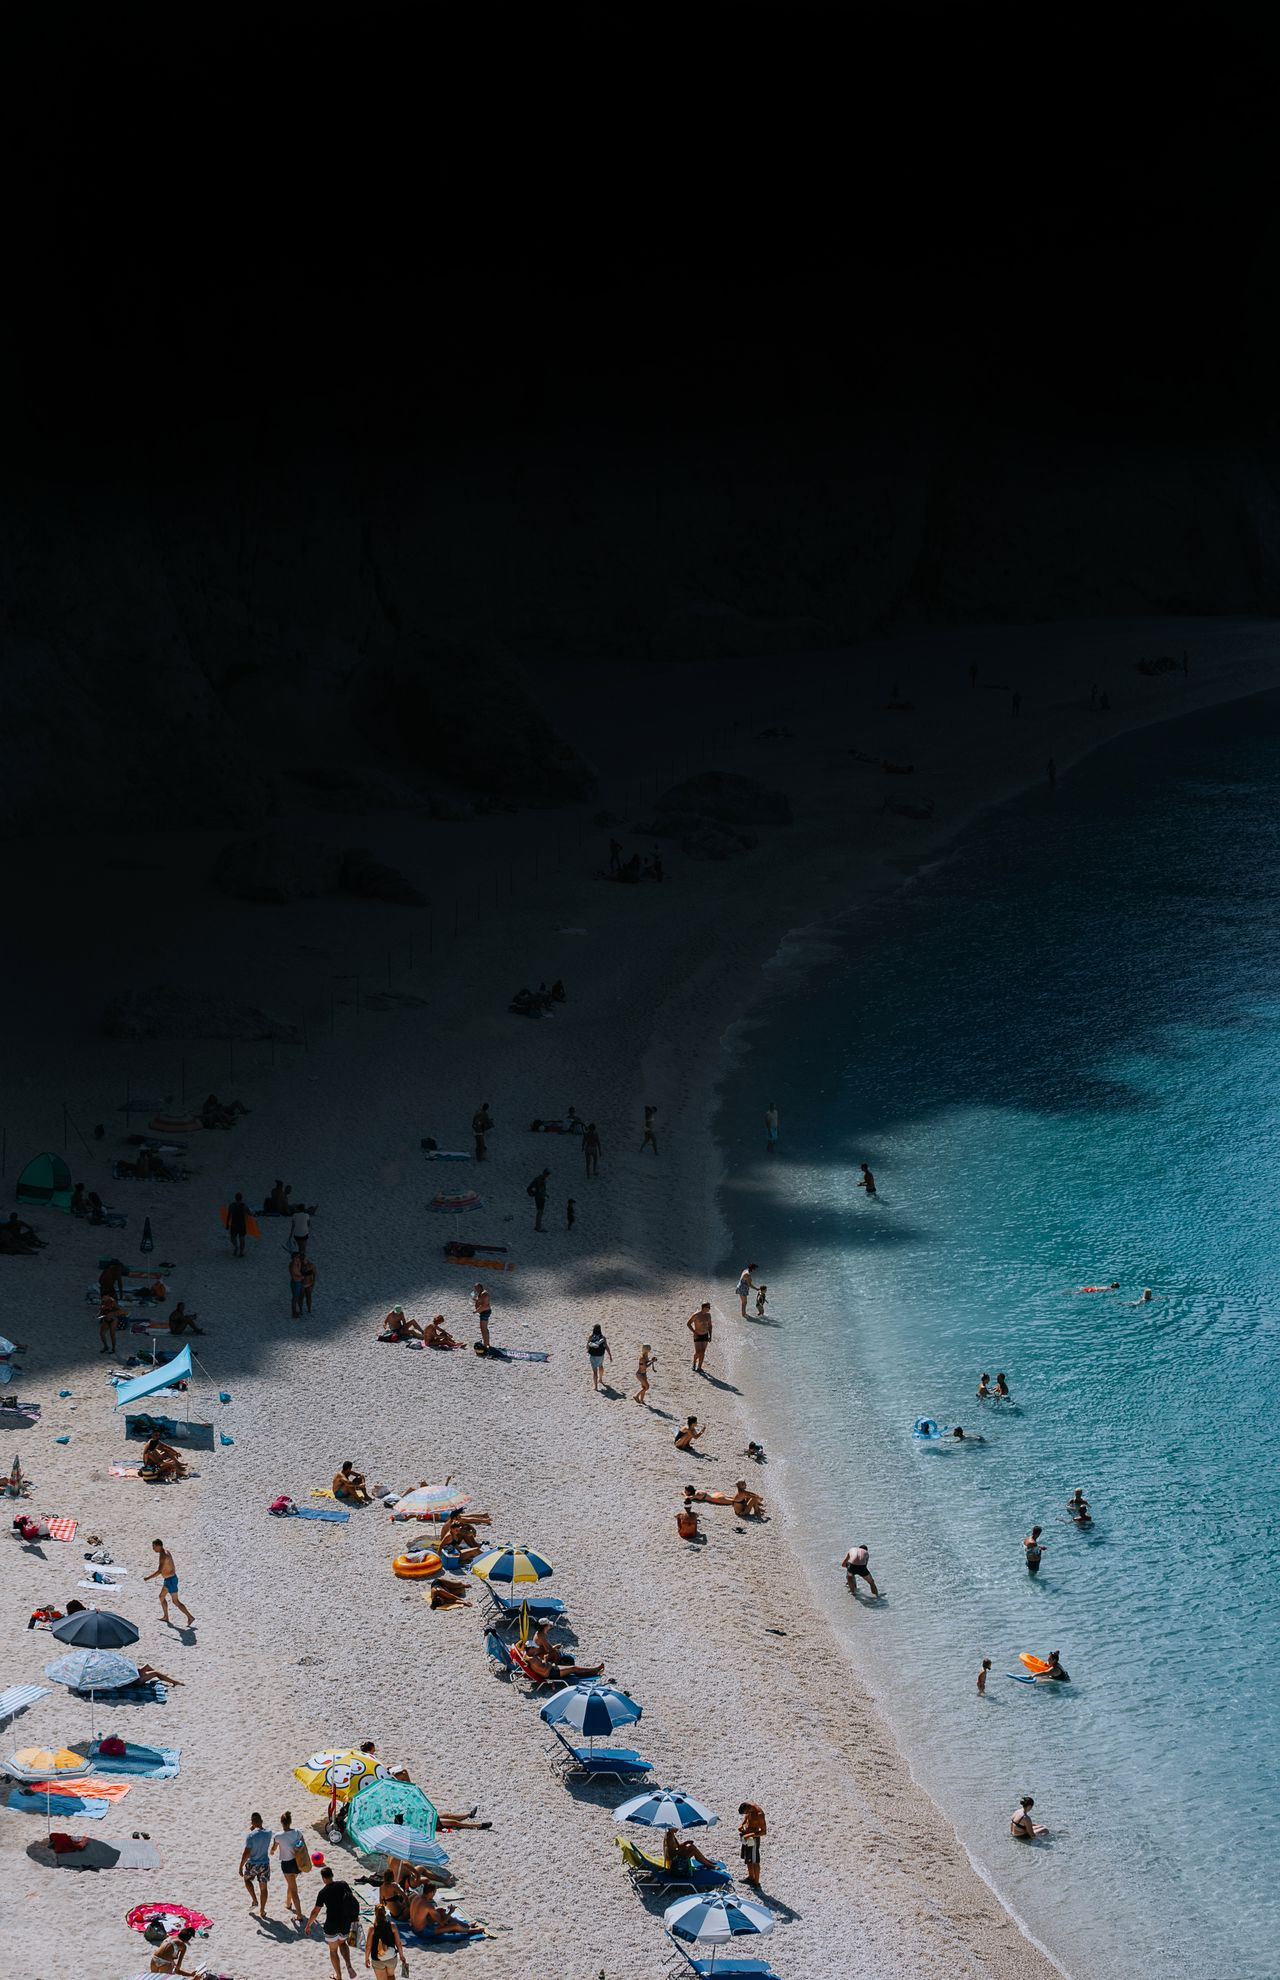 Aerial view of people at beach